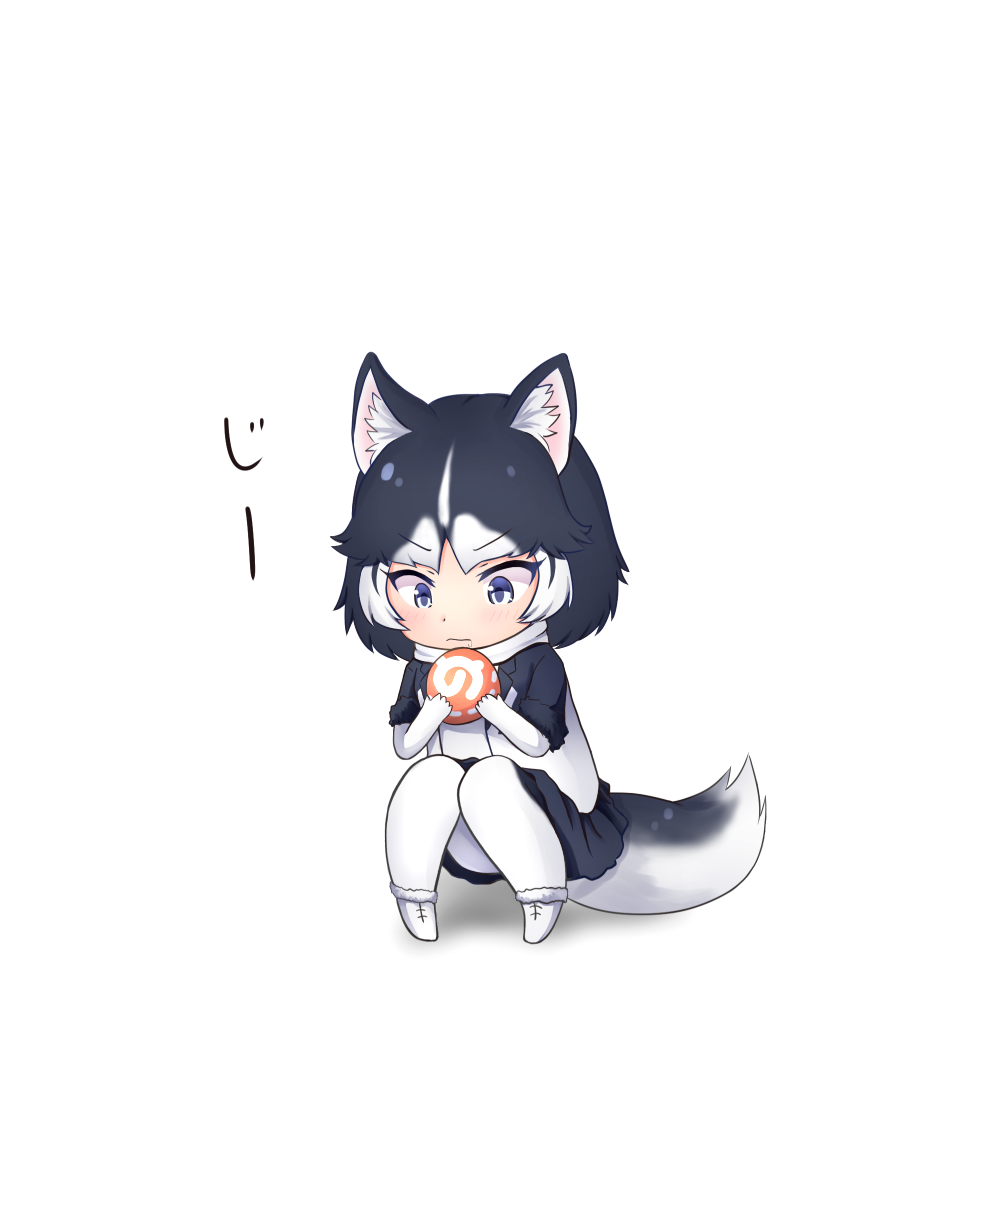 animal_ears black_hair check_translation dog_ears dog_tail elbow_gloves eyebrows_visible_through_hair food fur_trim gloves highres jacket japari_bun japari_symbol kemono_friends multicolored_hair nina_yuki pantyhose pleated_skirt saliva scarf short_hair short_sleeves siberian_husky_(kemono_friends) skirt sound_effects tail translation_request v-shaped_eyebrows white_hair